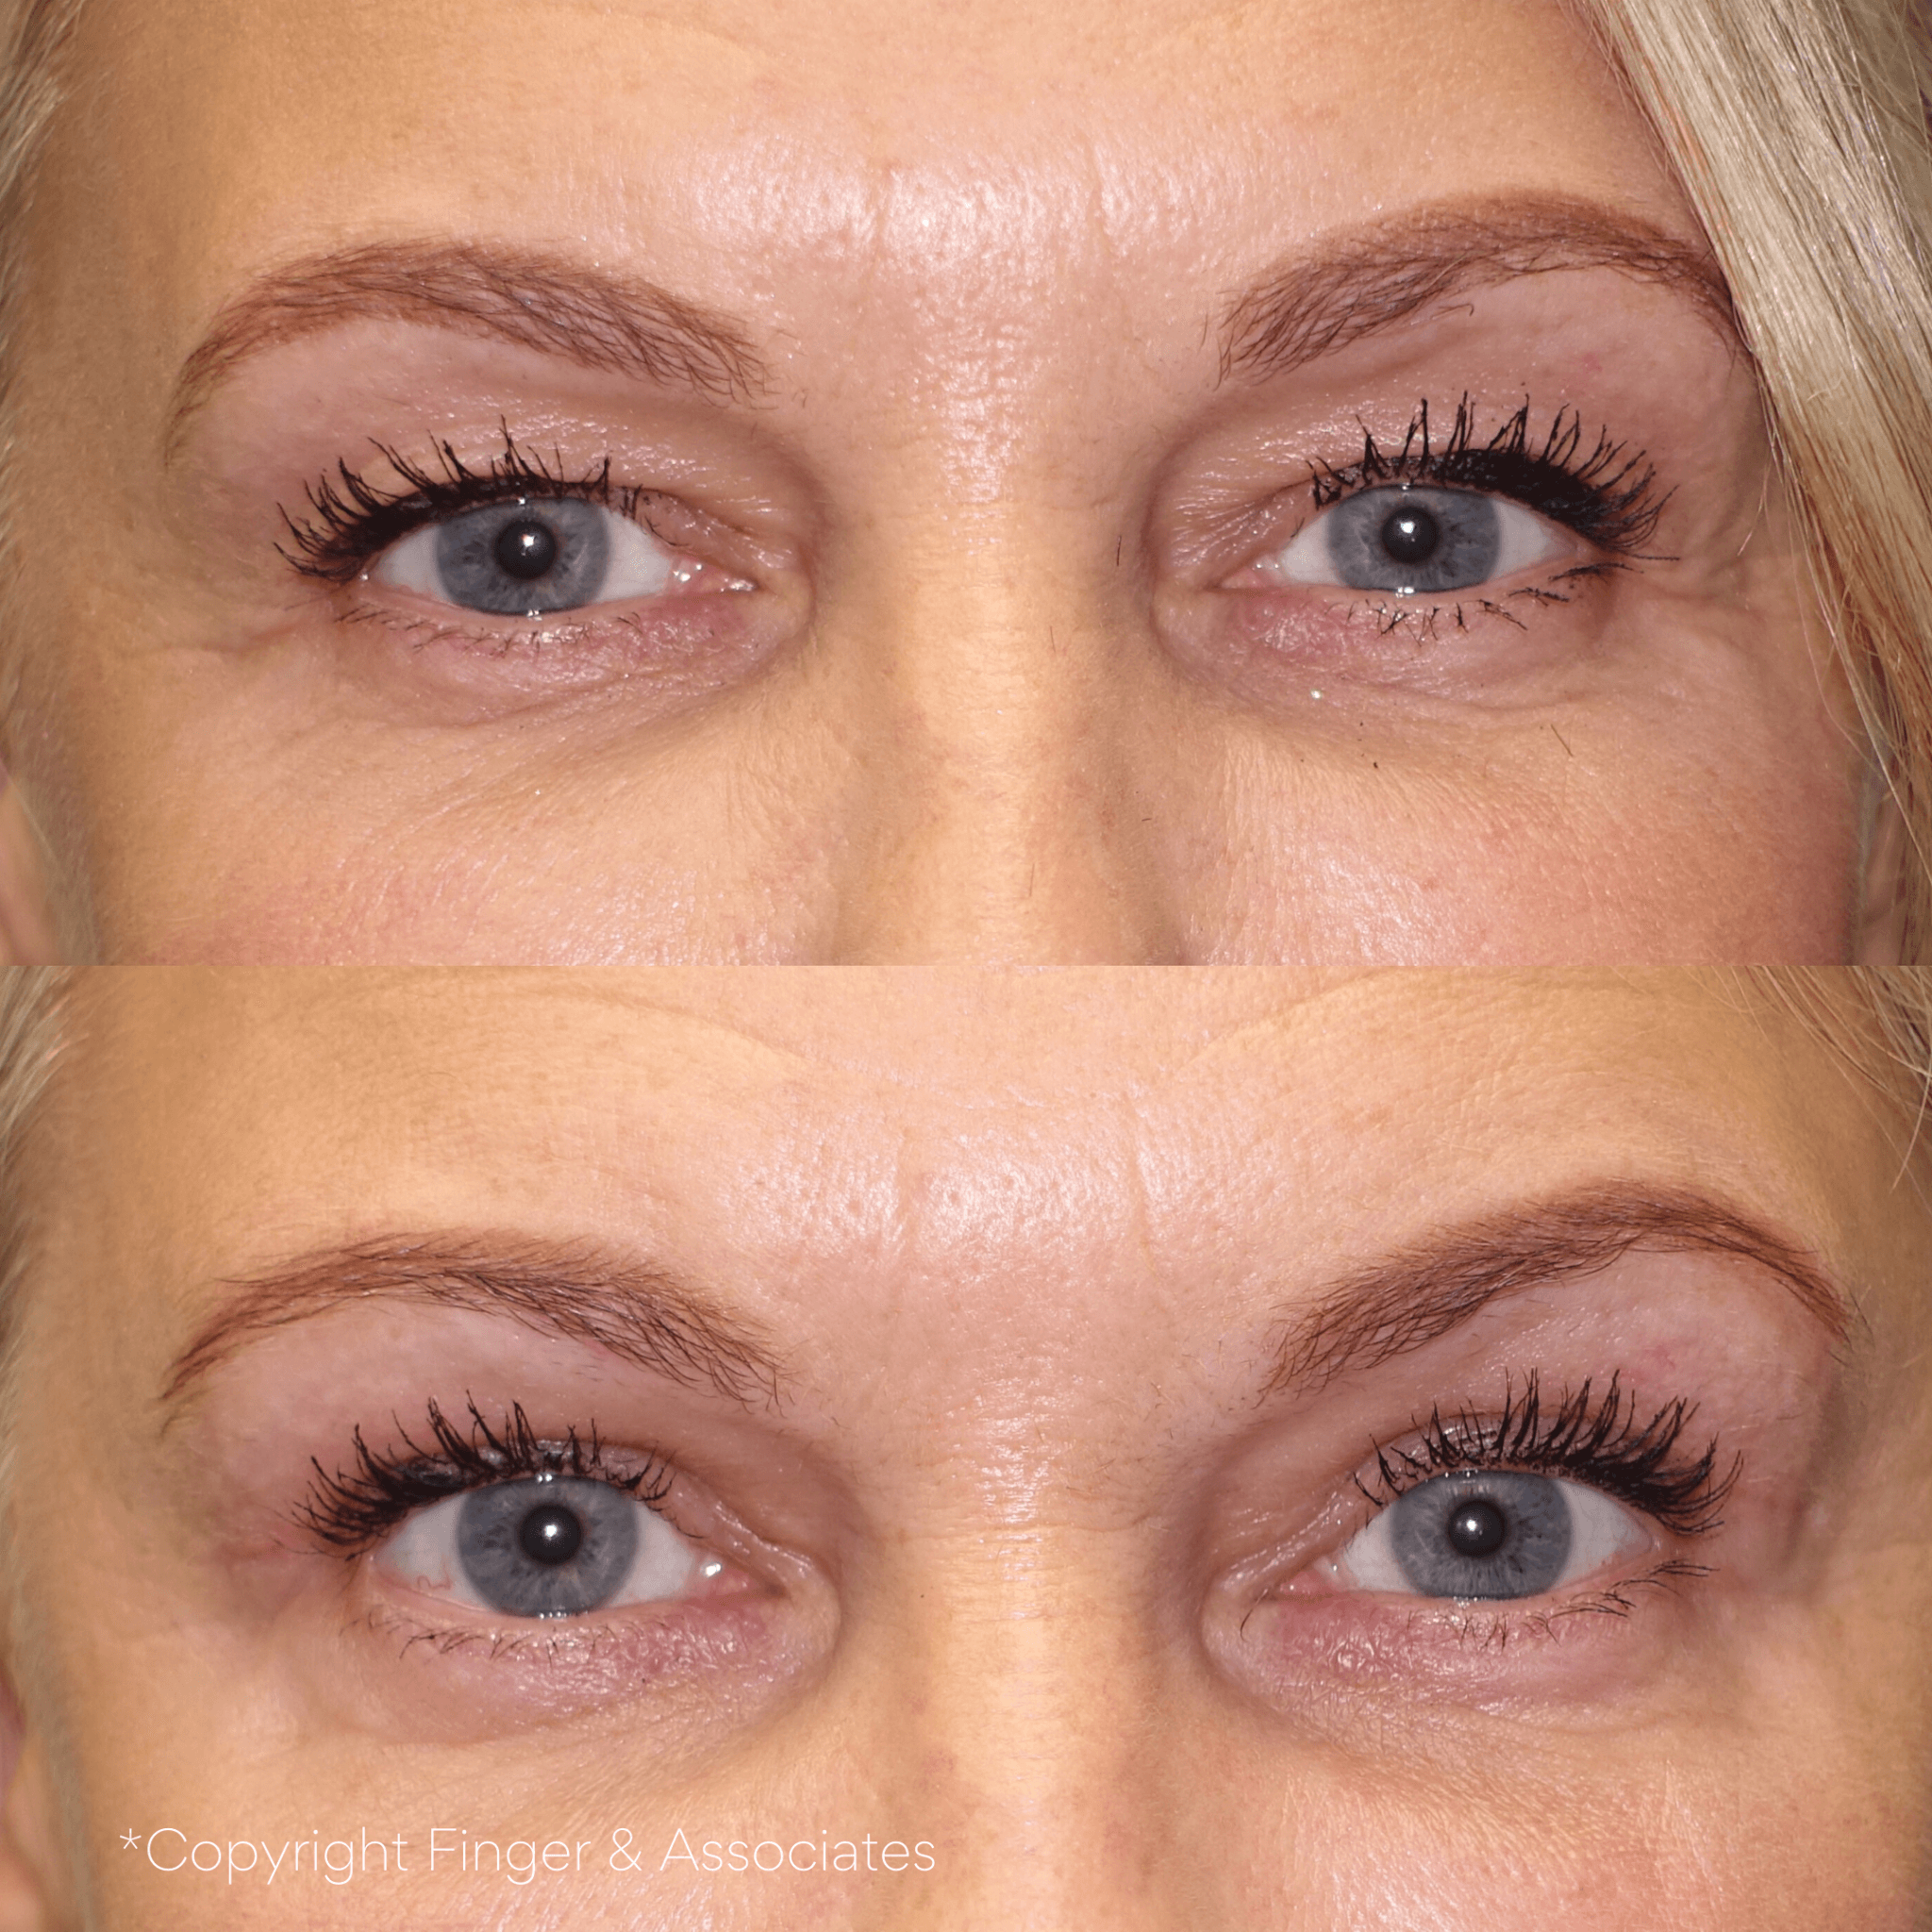 Before and after 4-month of receiving Blepharoplasty - upper eyelid lift